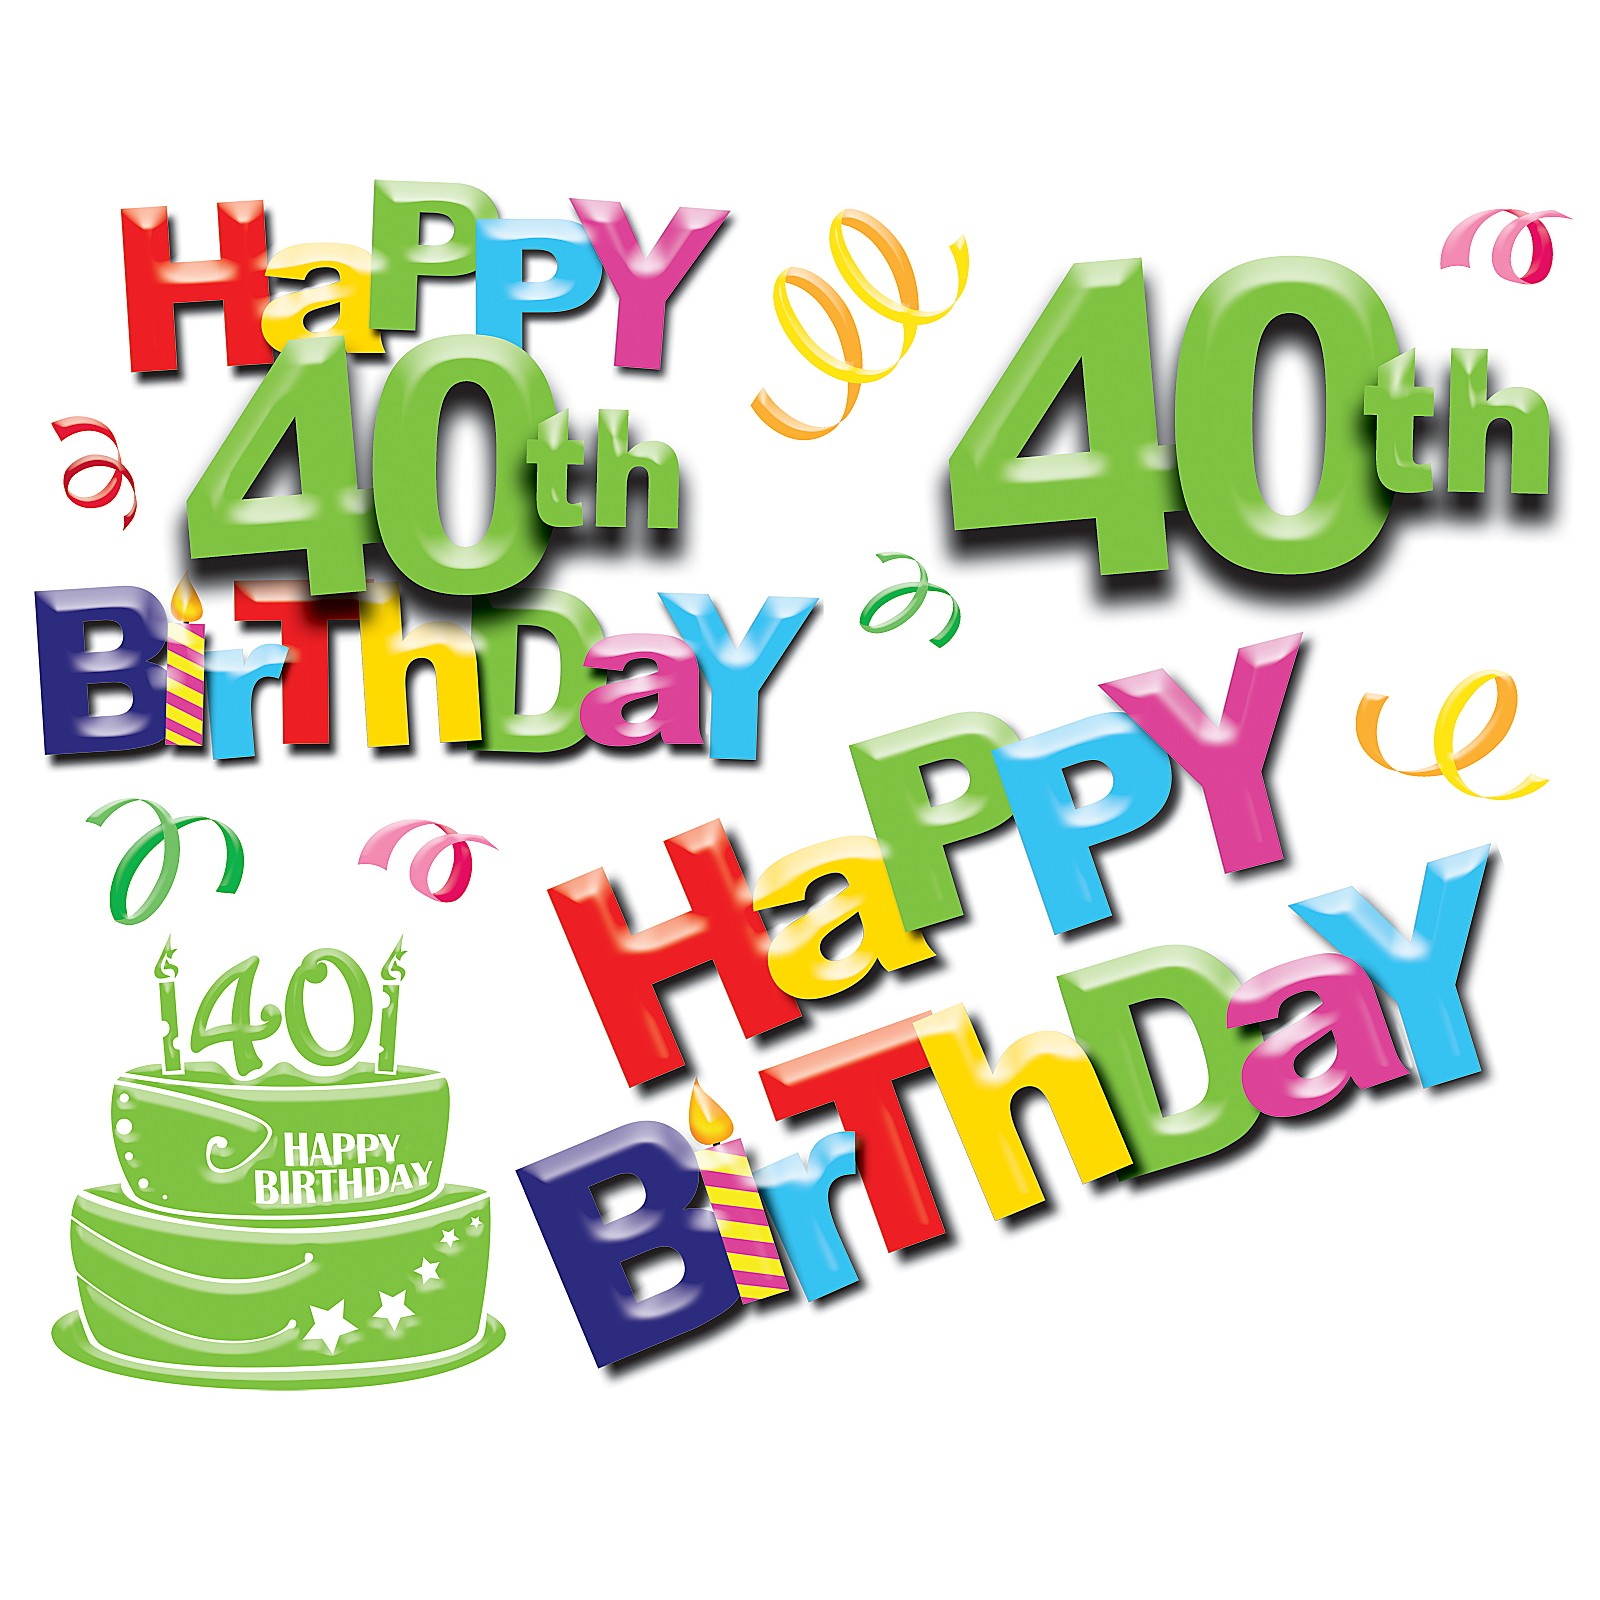 hight resolution of 40th birthday pictures clip art pubzday